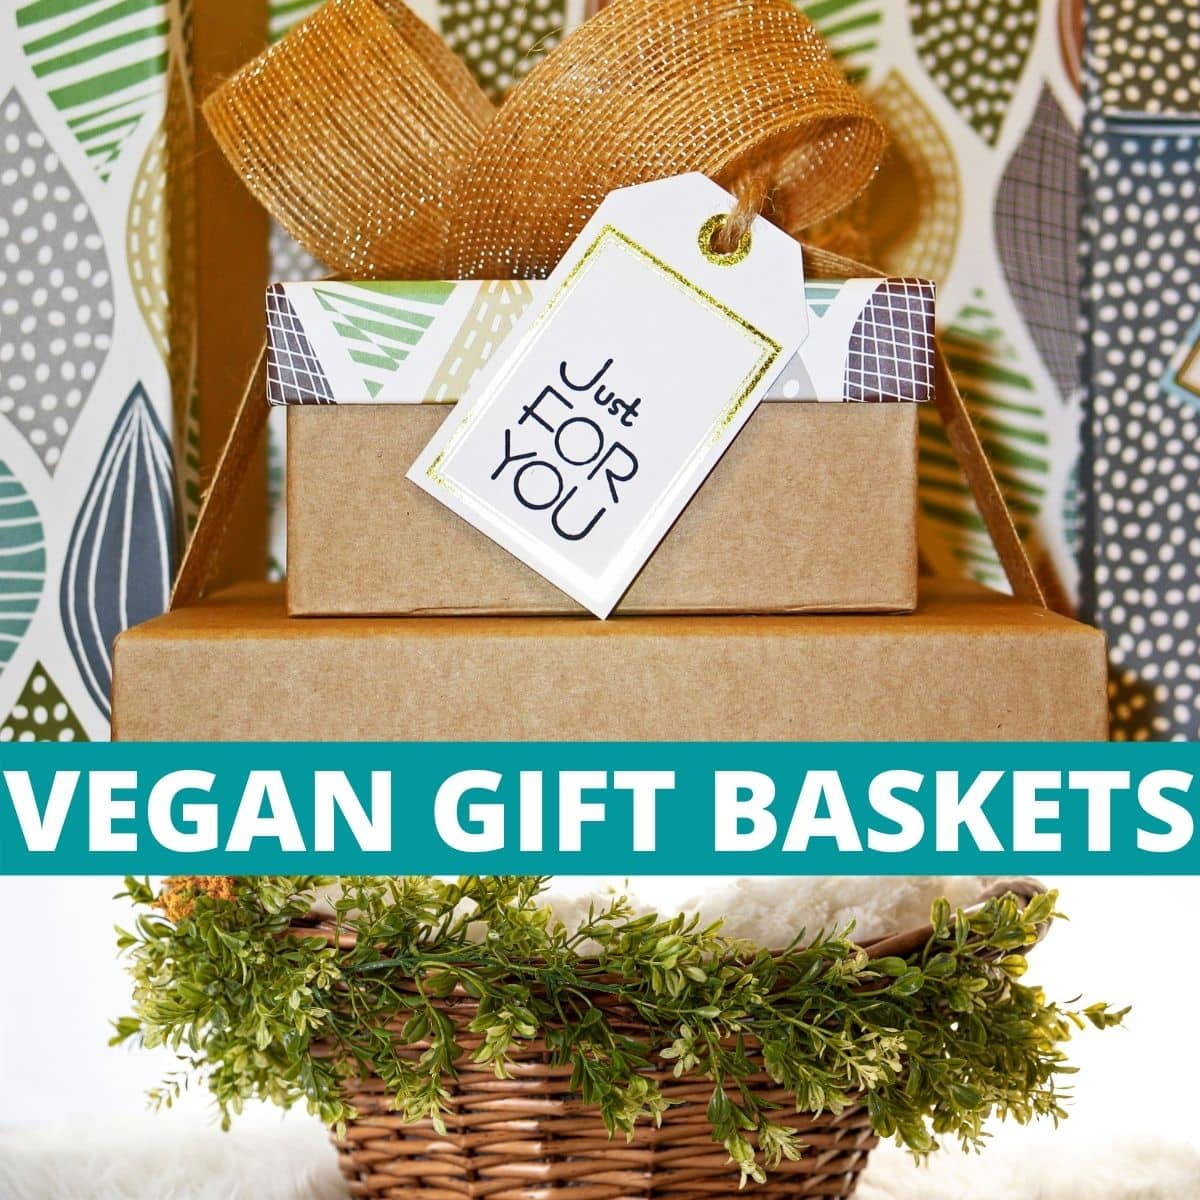 """A gift on top of a basket with text that says, """"Vegan Gift Baskets."""""""